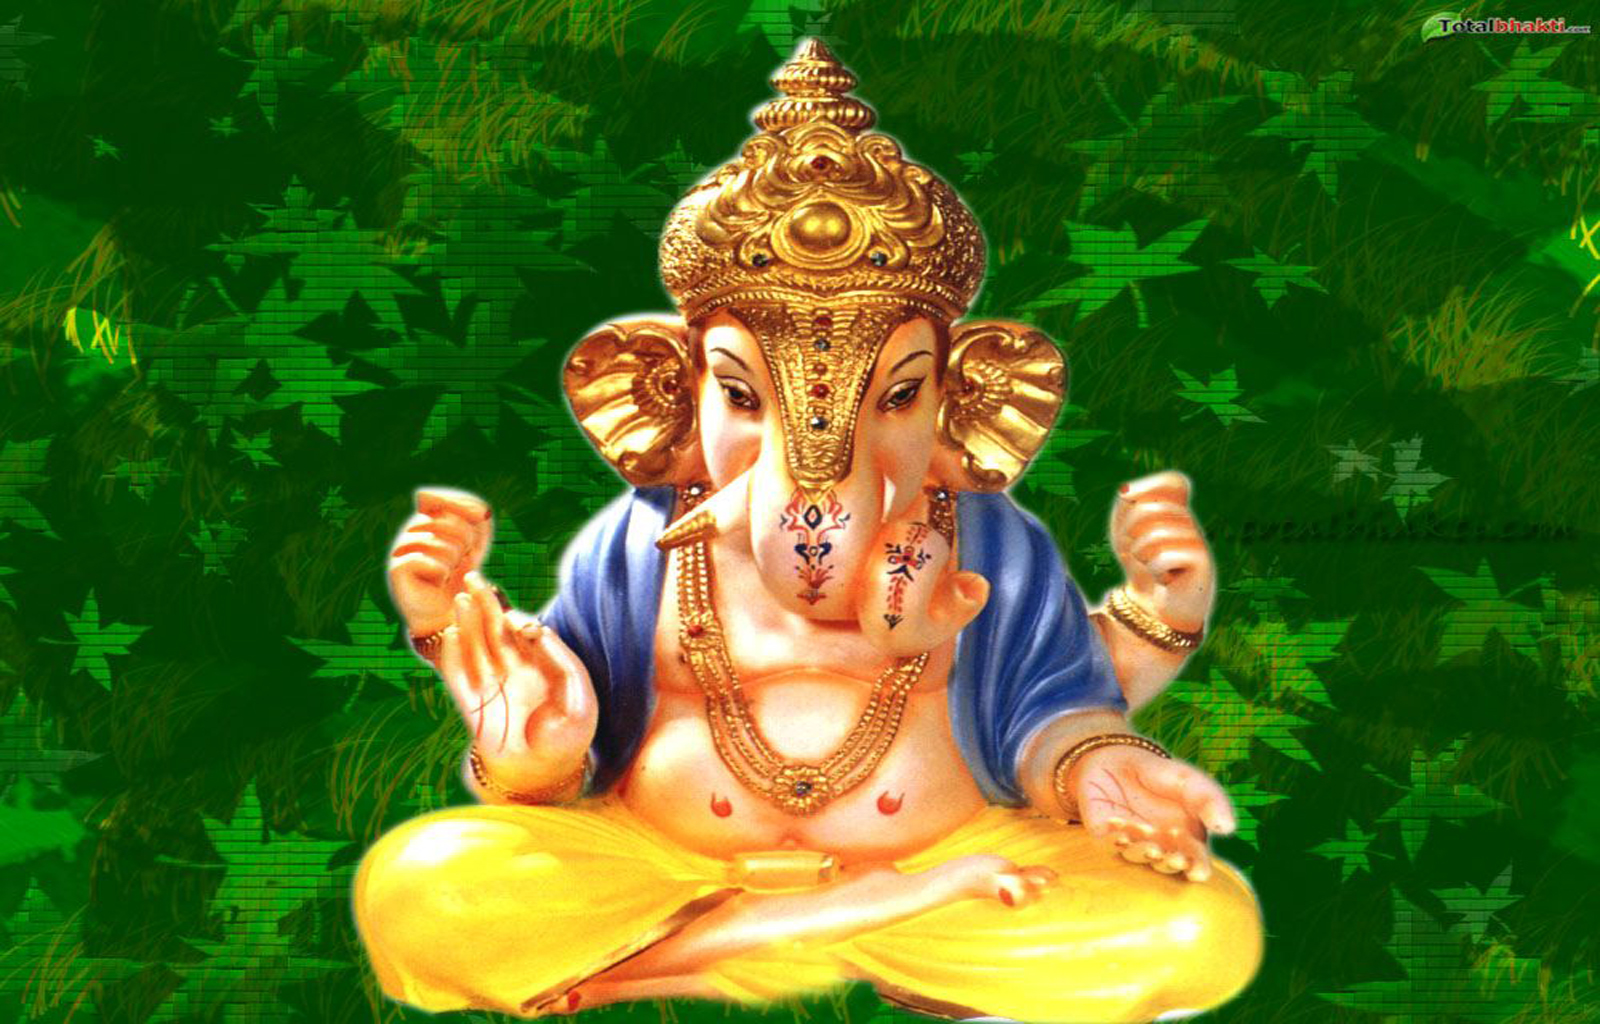 Shree Ganesh Hd Images: Important Information: Lord Ganesh Wallpaper, Free Ganesha